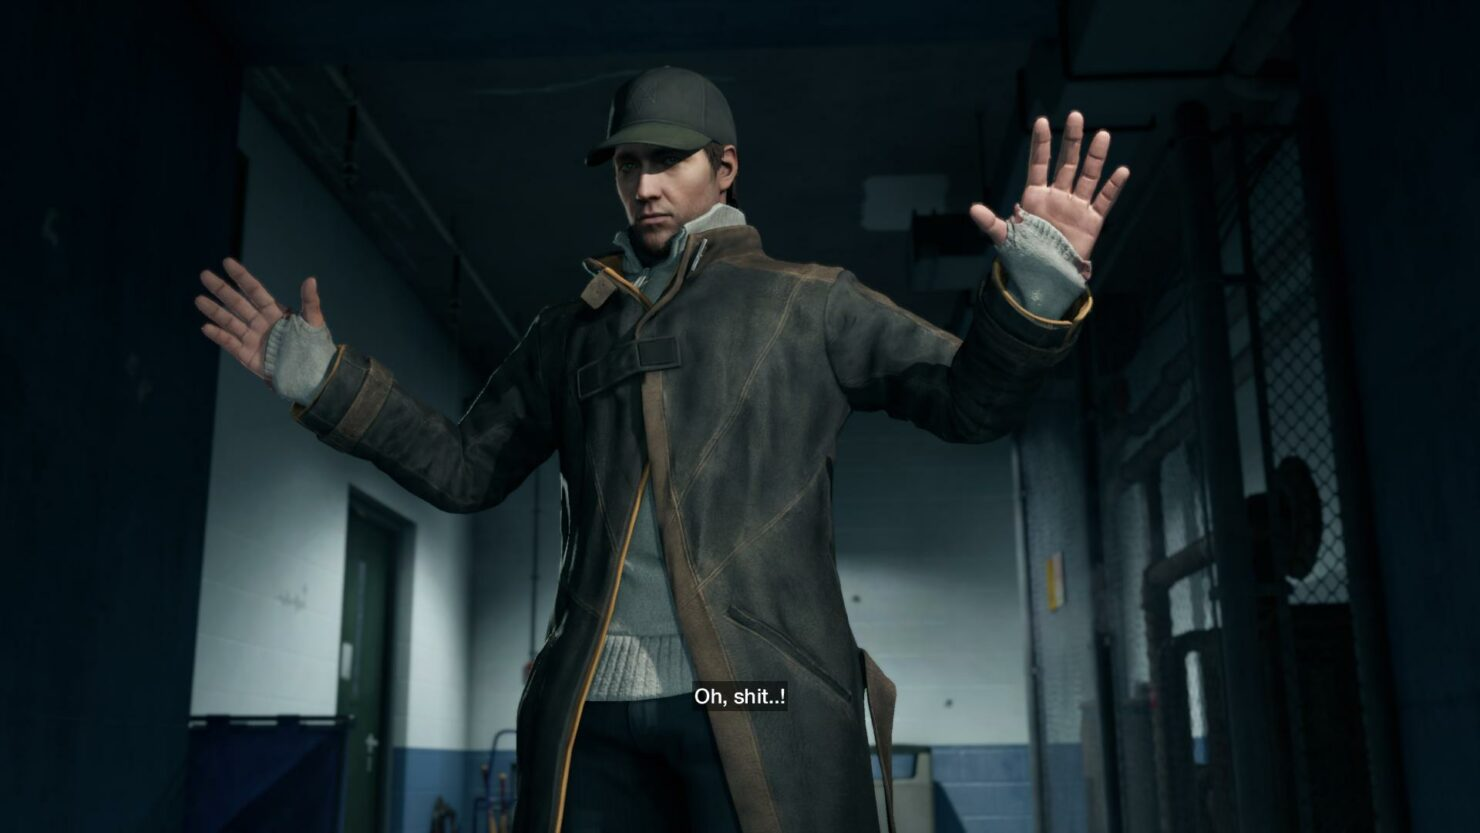 watch_dogs-2014-05-24-10-37-45-37